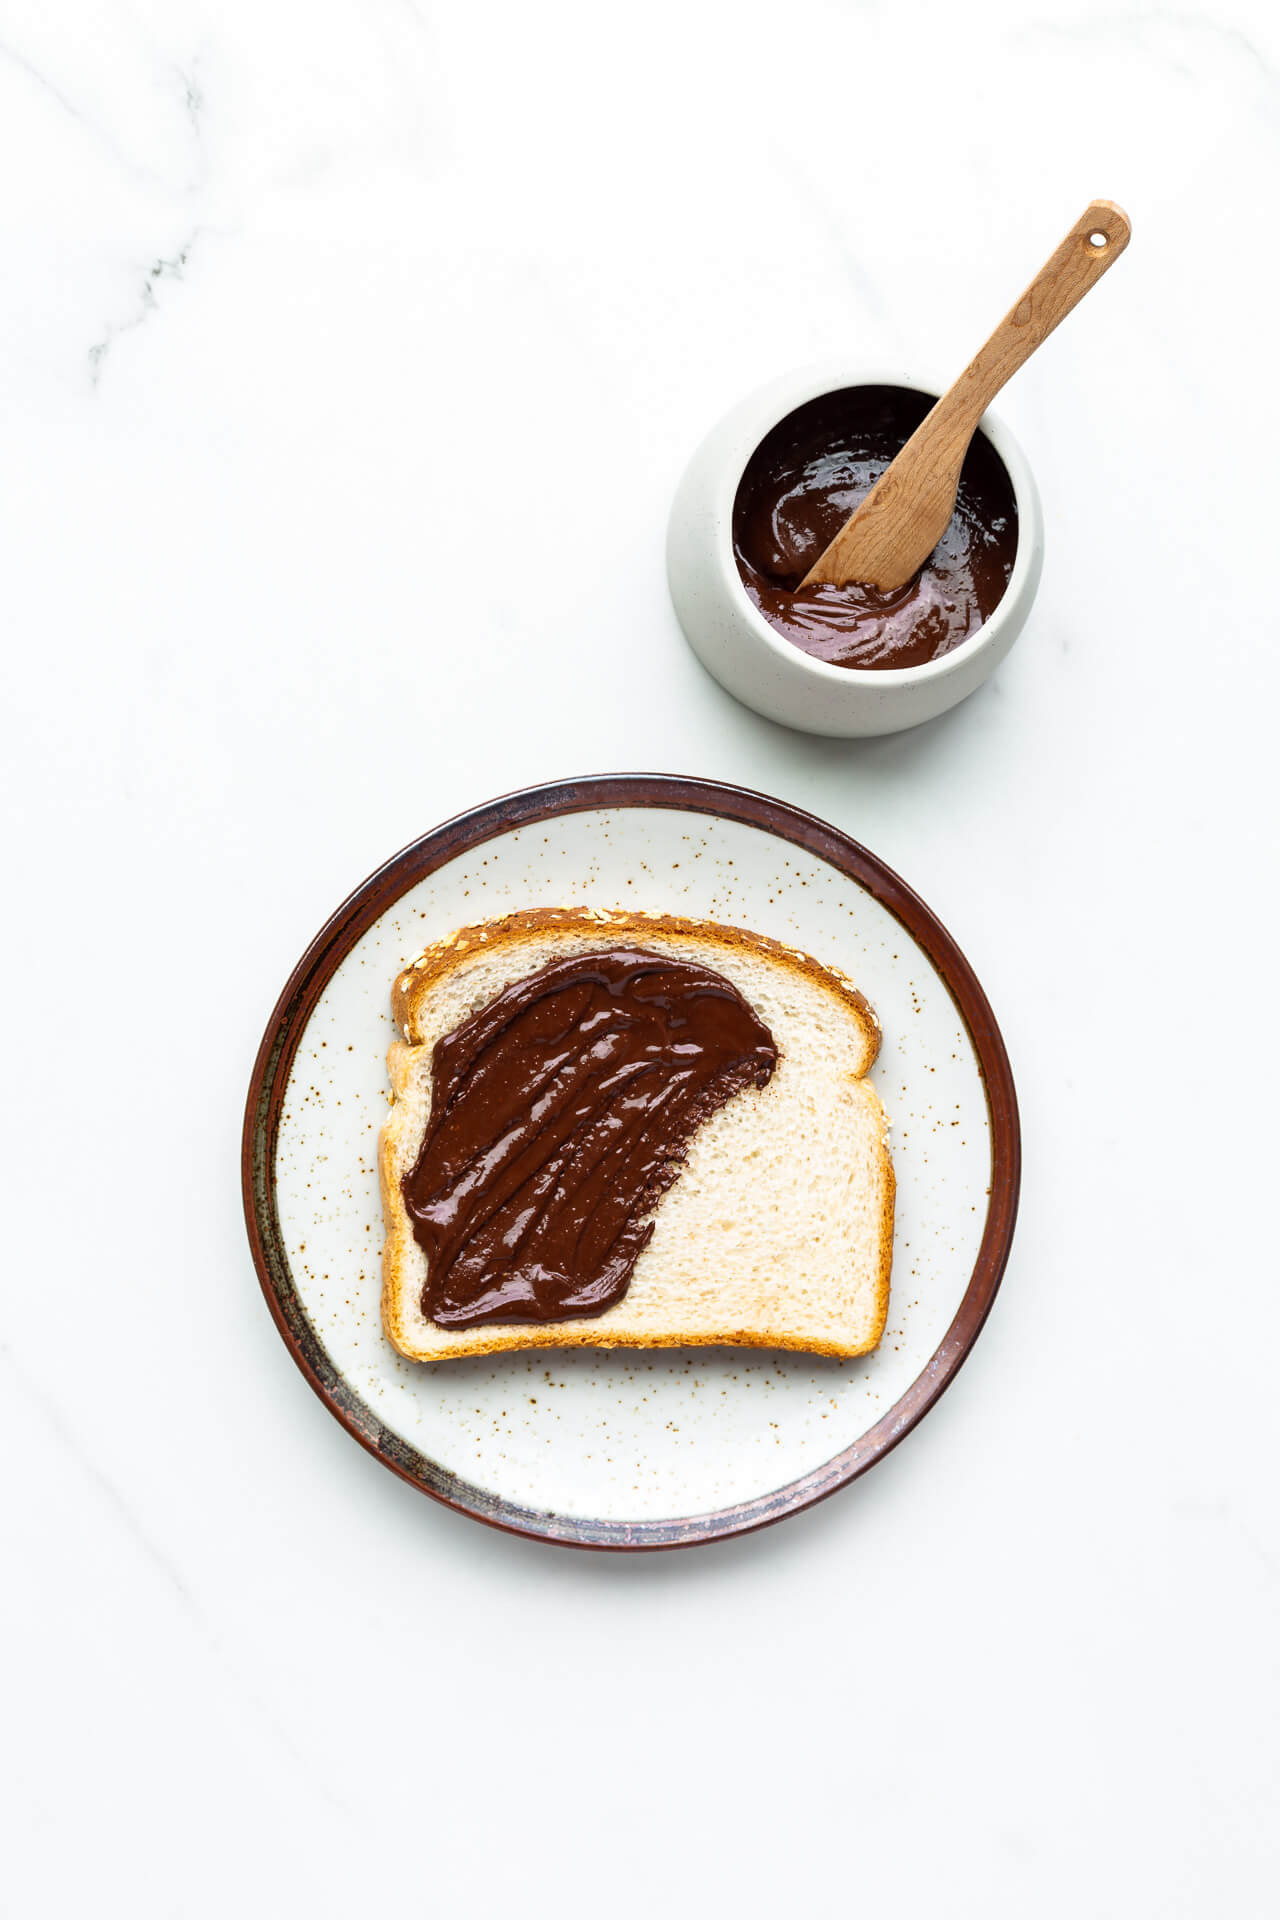 Chocolate peanut butter partly spread on a slice of white sandwich bread set on a ceramic plate with jar of spread and wood knife.